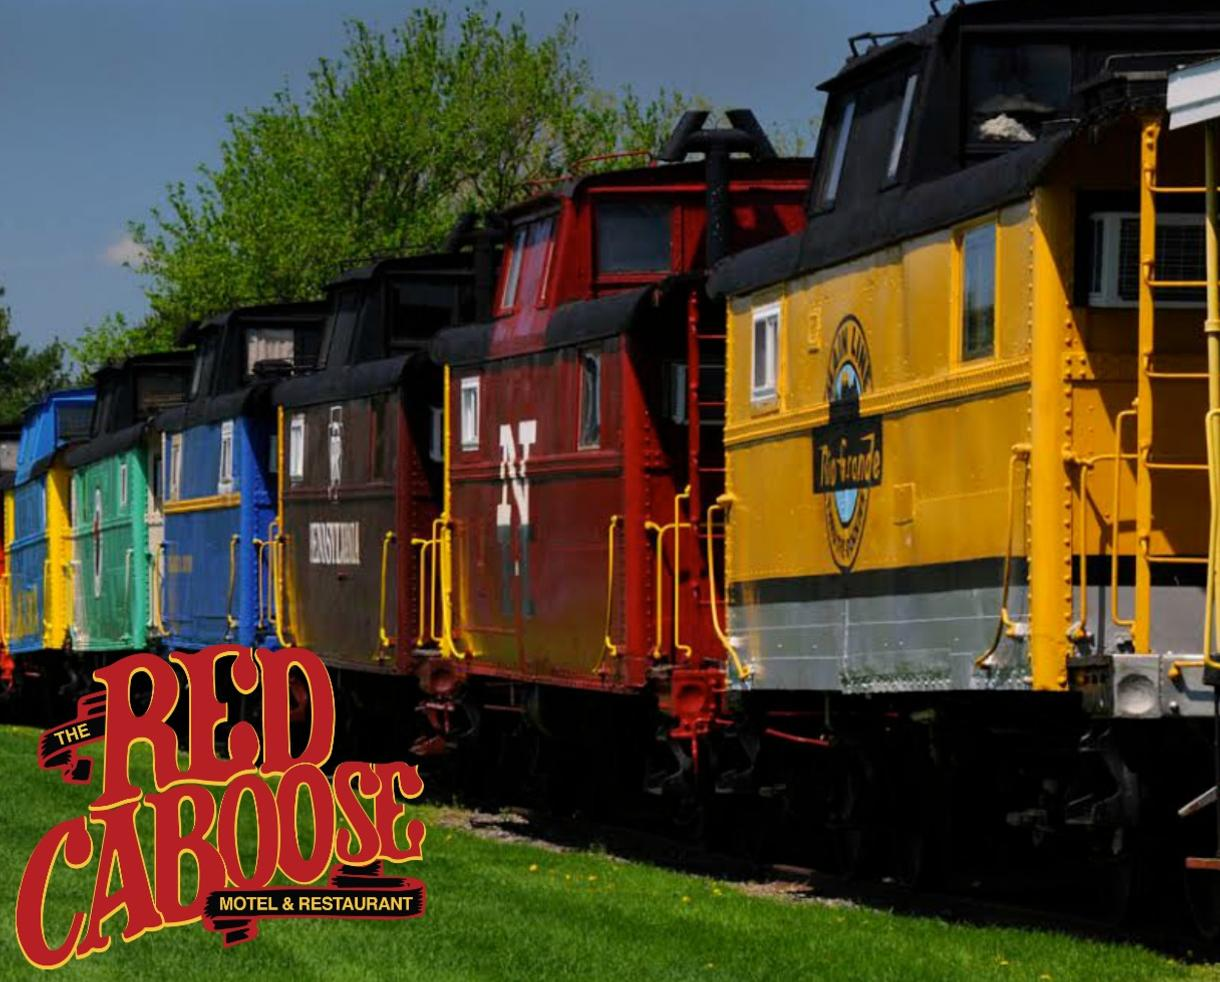 $99 for The Red Caboose Motel Weekday Overnight Stay in a Real Caboose - $15 Deposit Paid Now